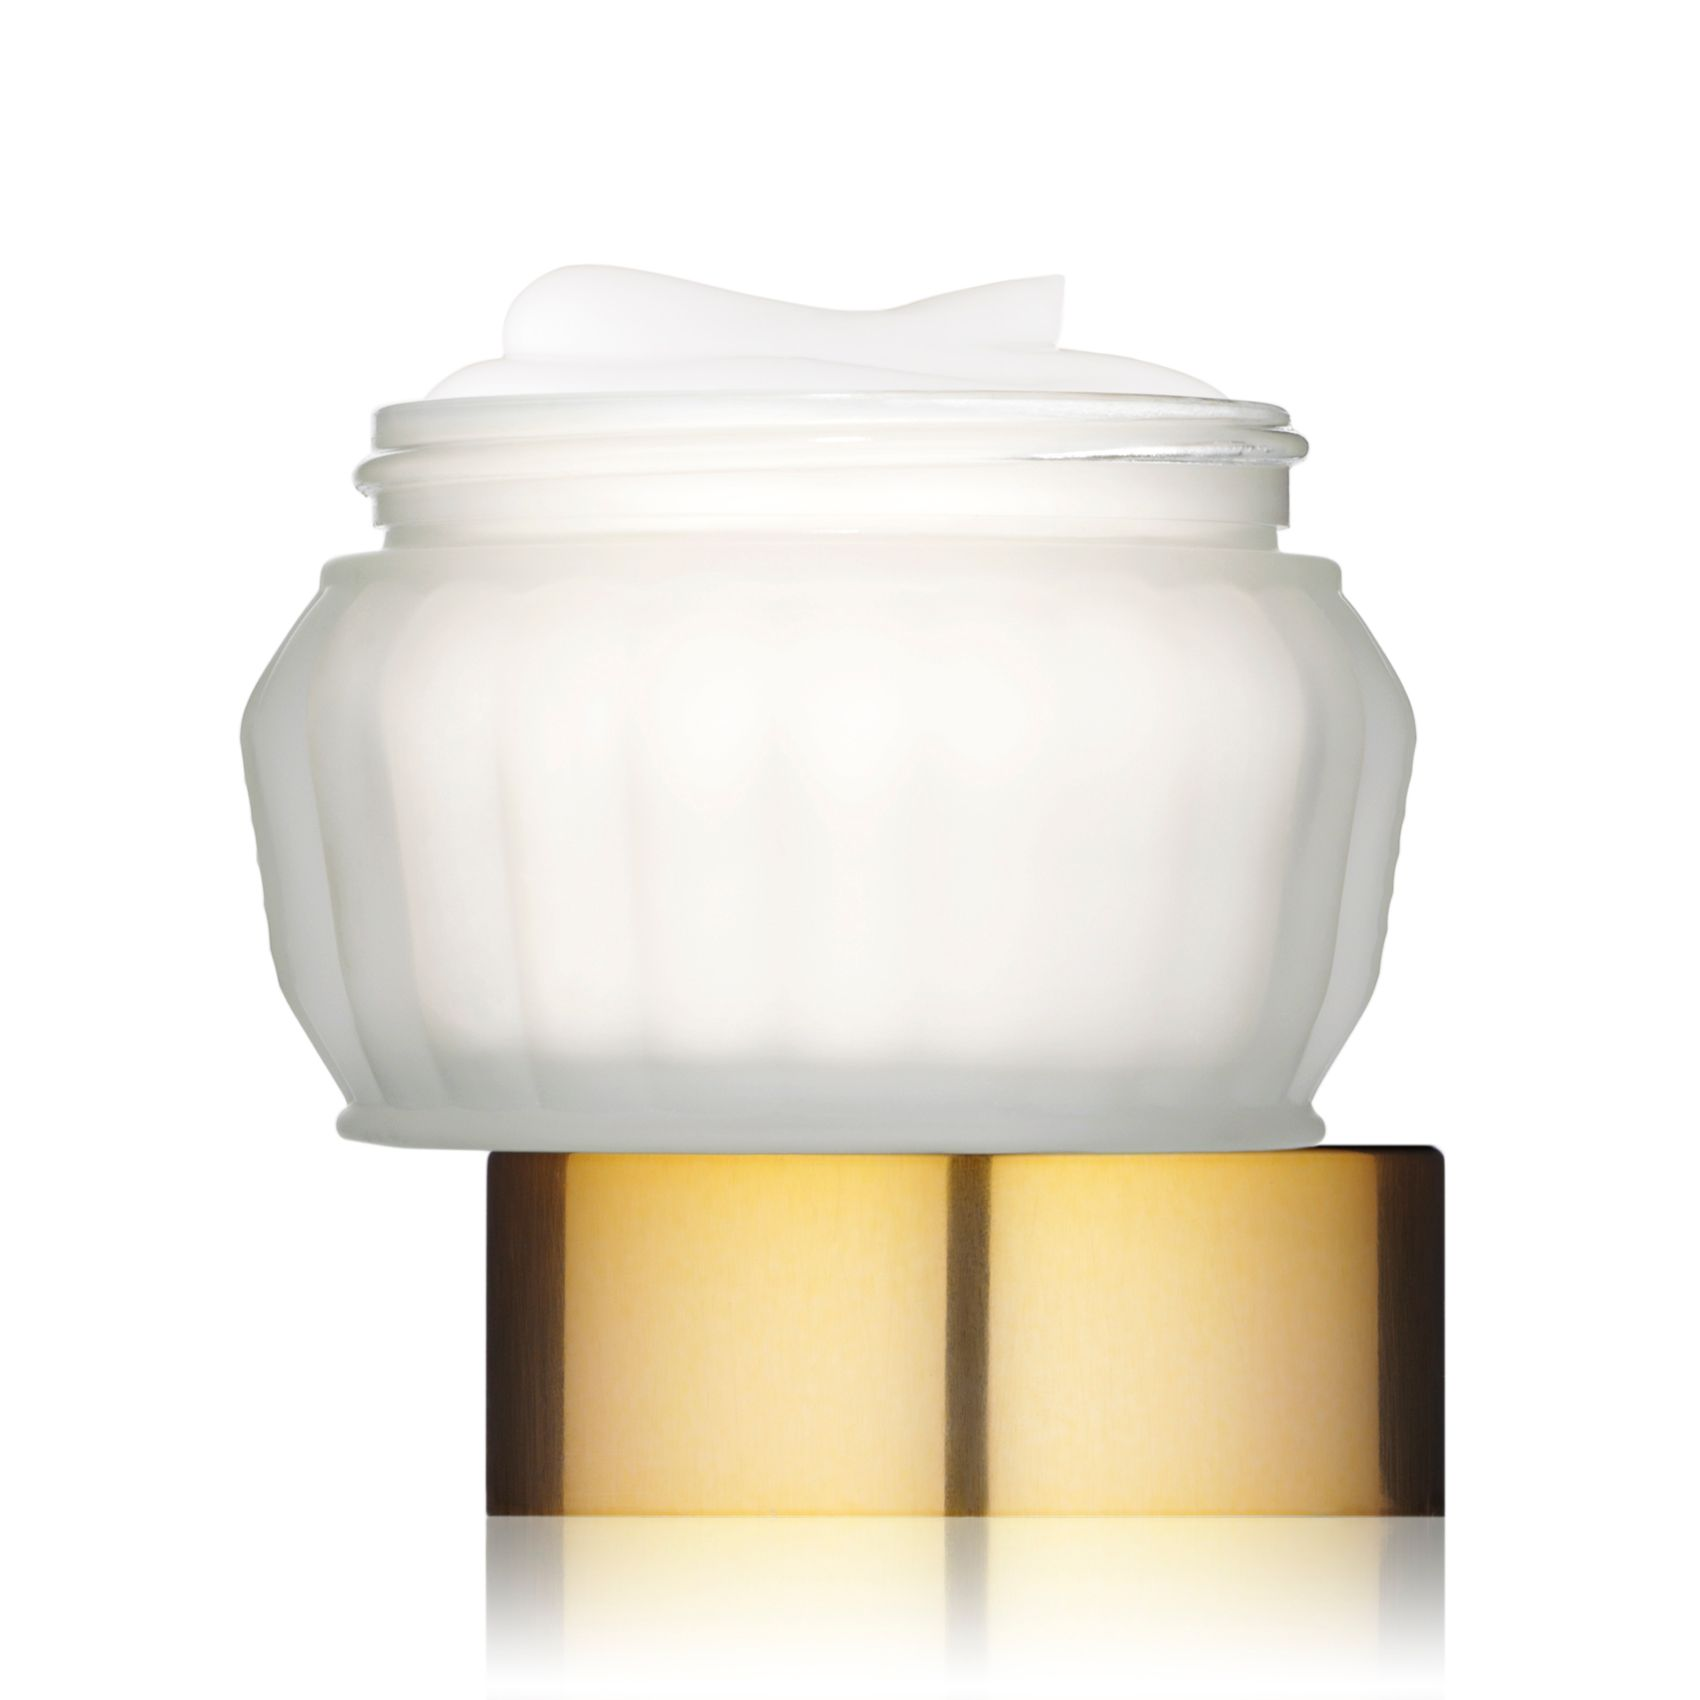 Estée Lauder Youth Dew Perfumed Body Creme